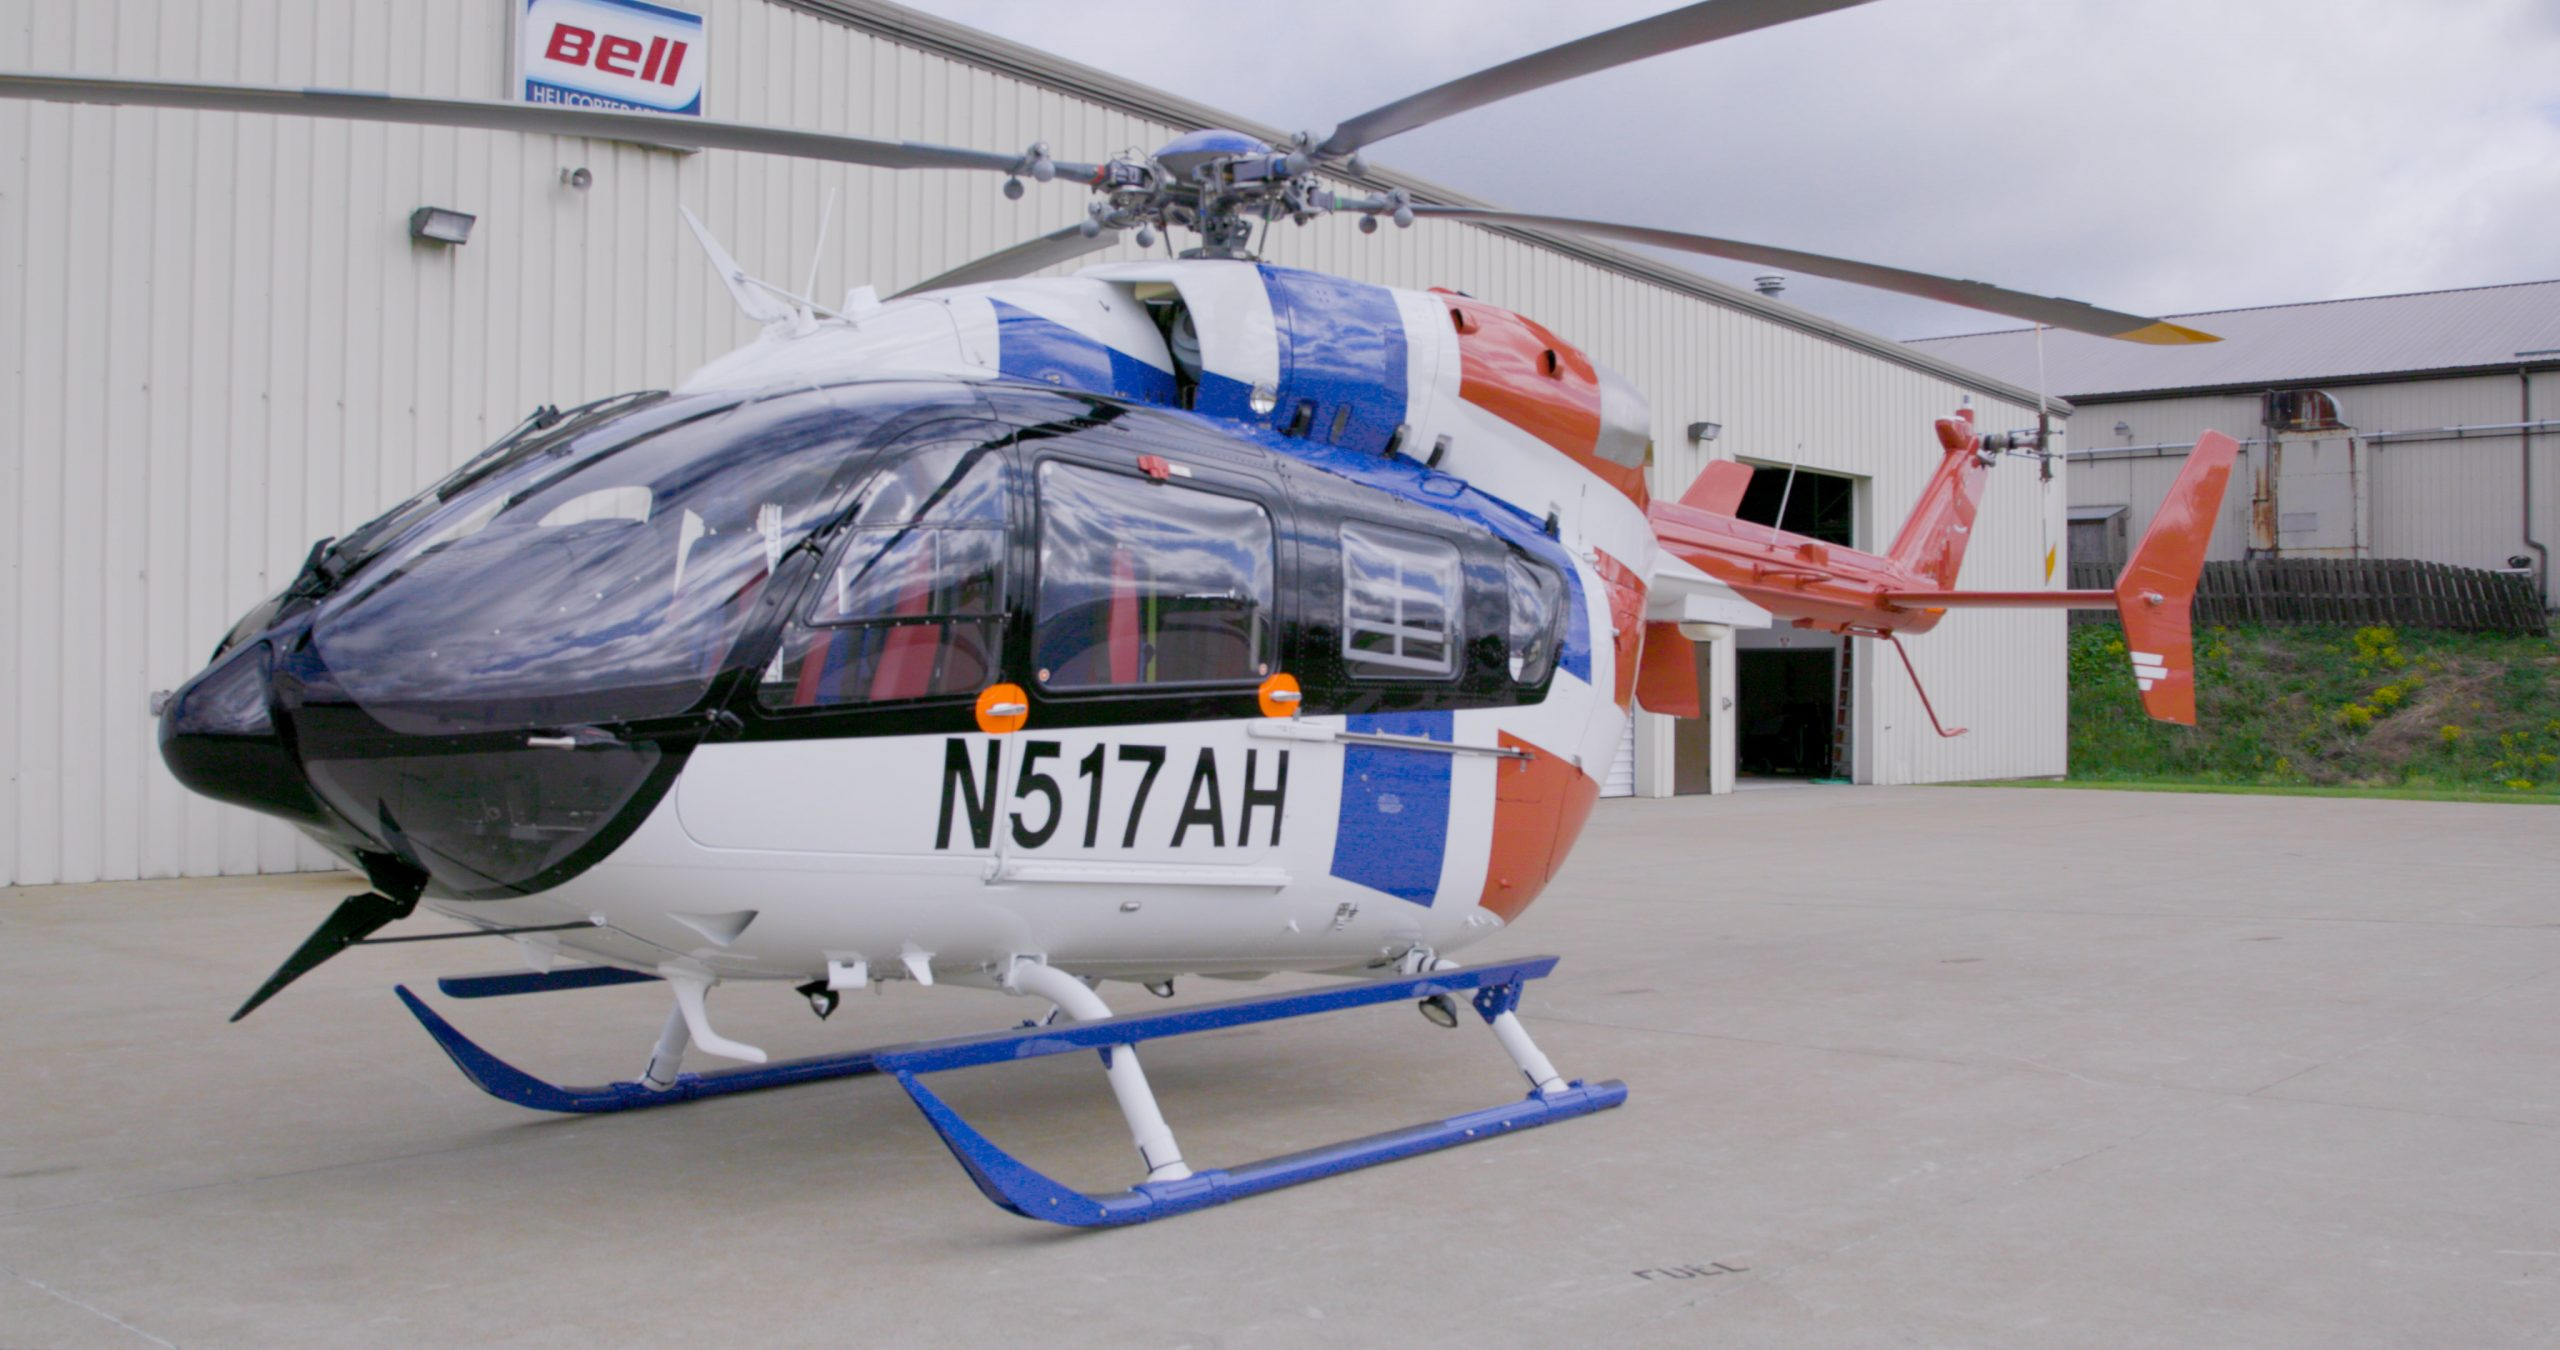 Metro completes an EMS EC145e for Airmedic